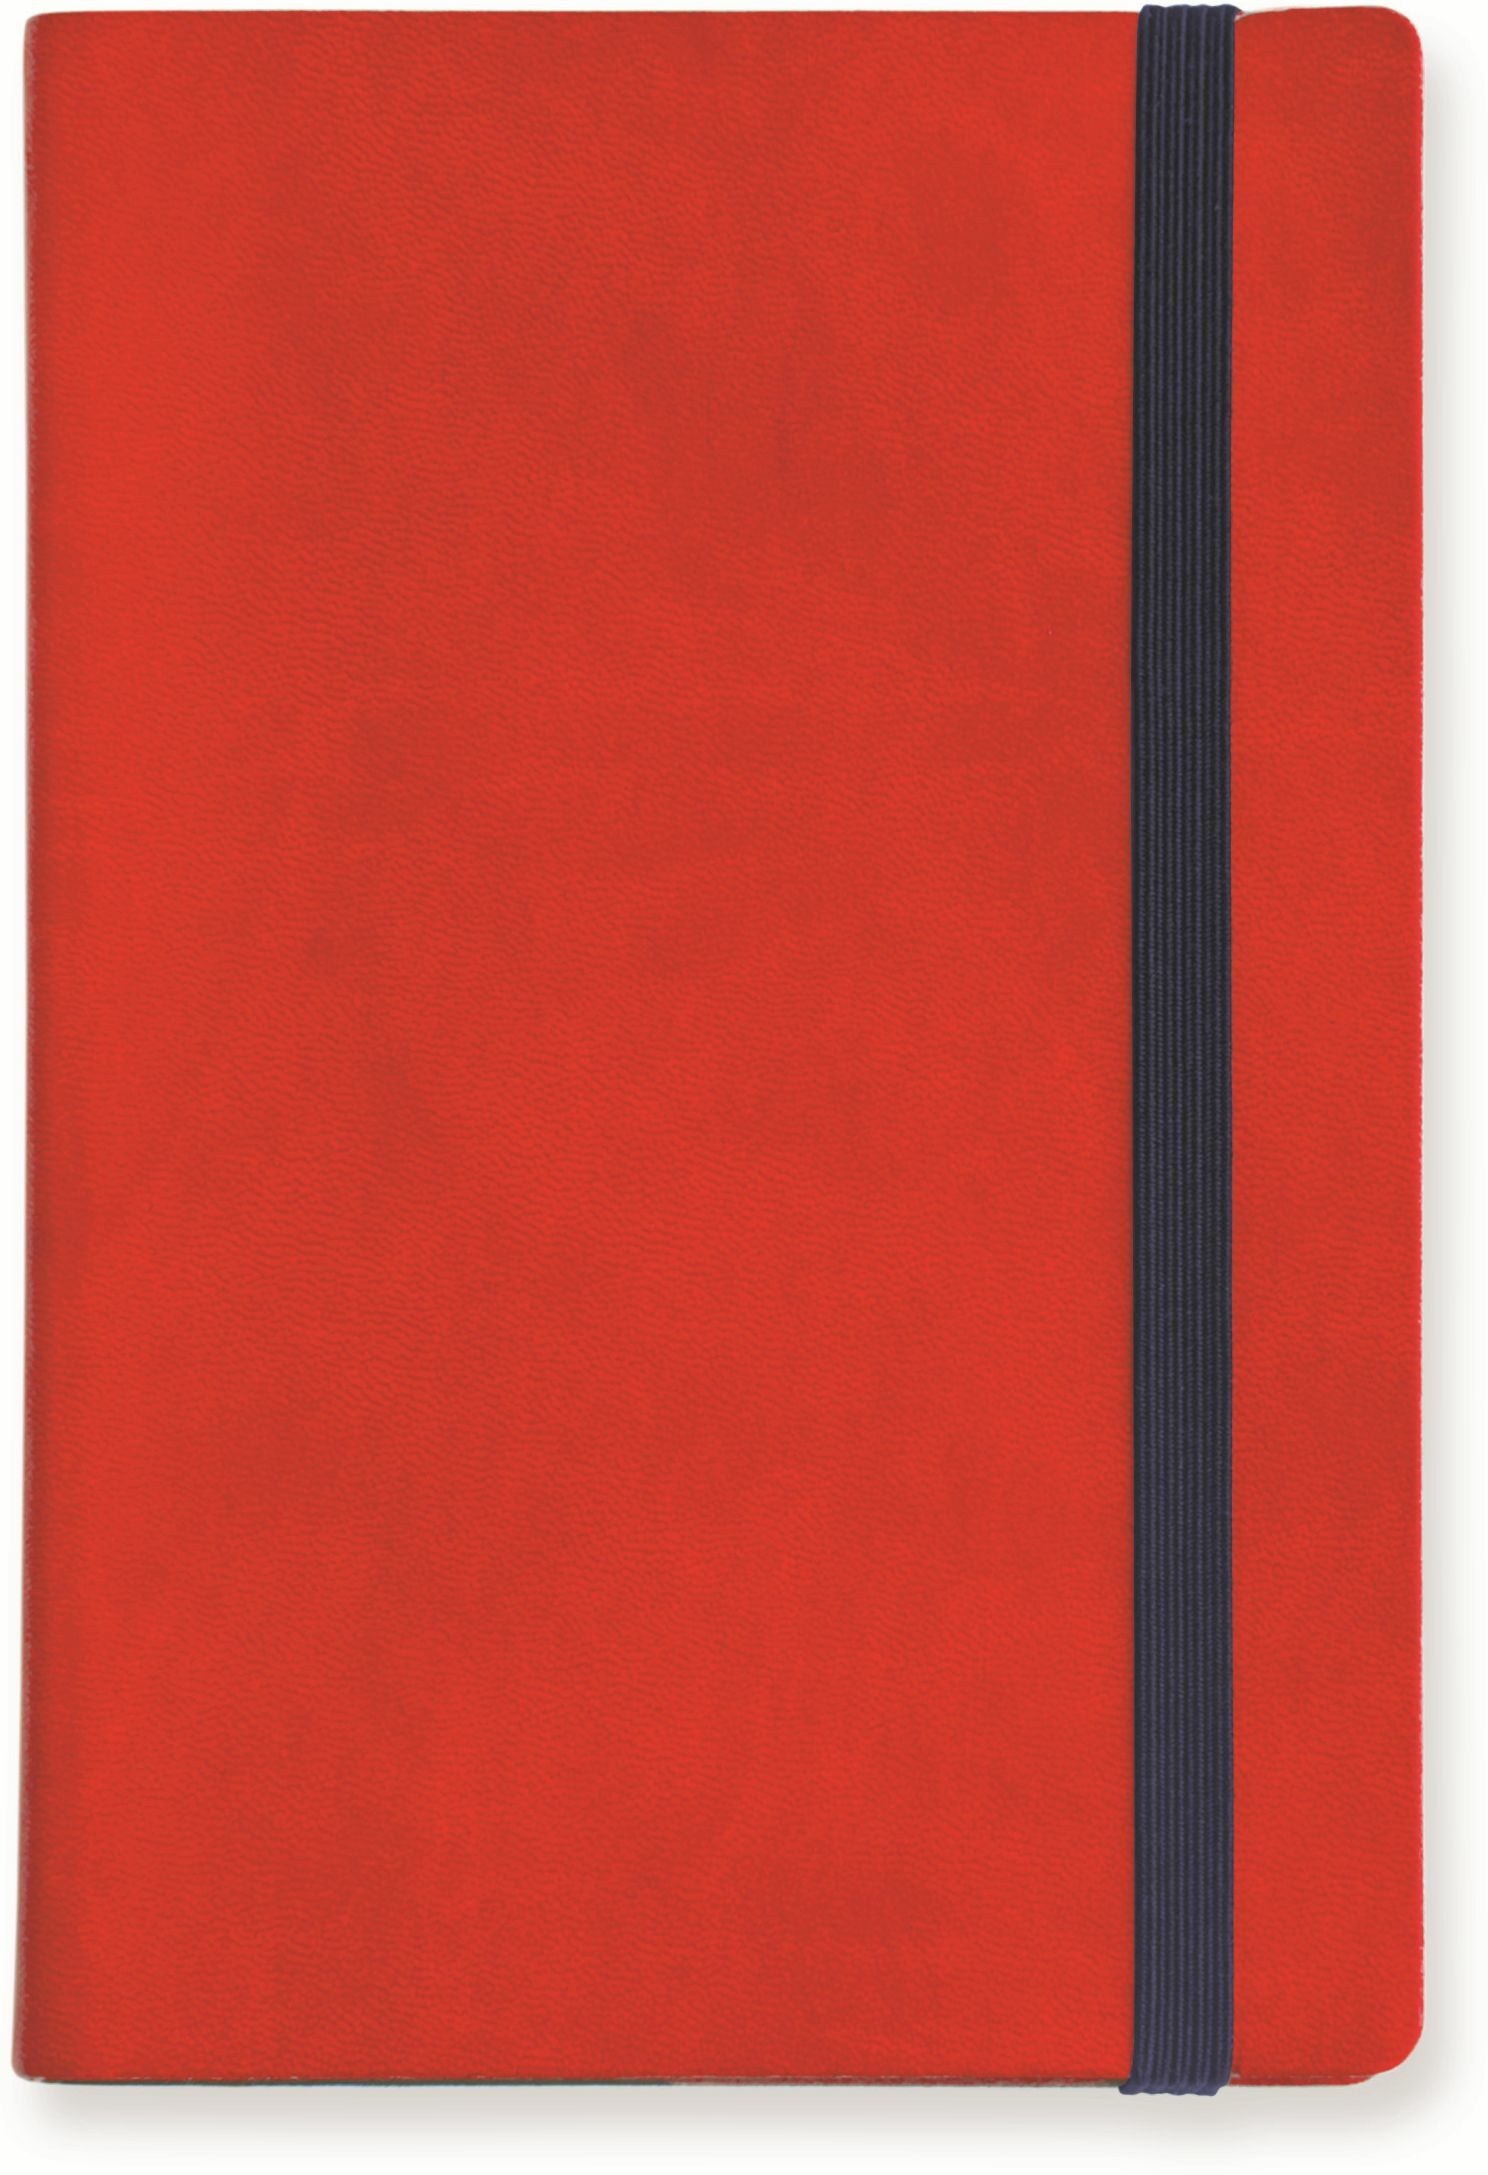 Image of My Notebook Small a pagine bianche. Rosso